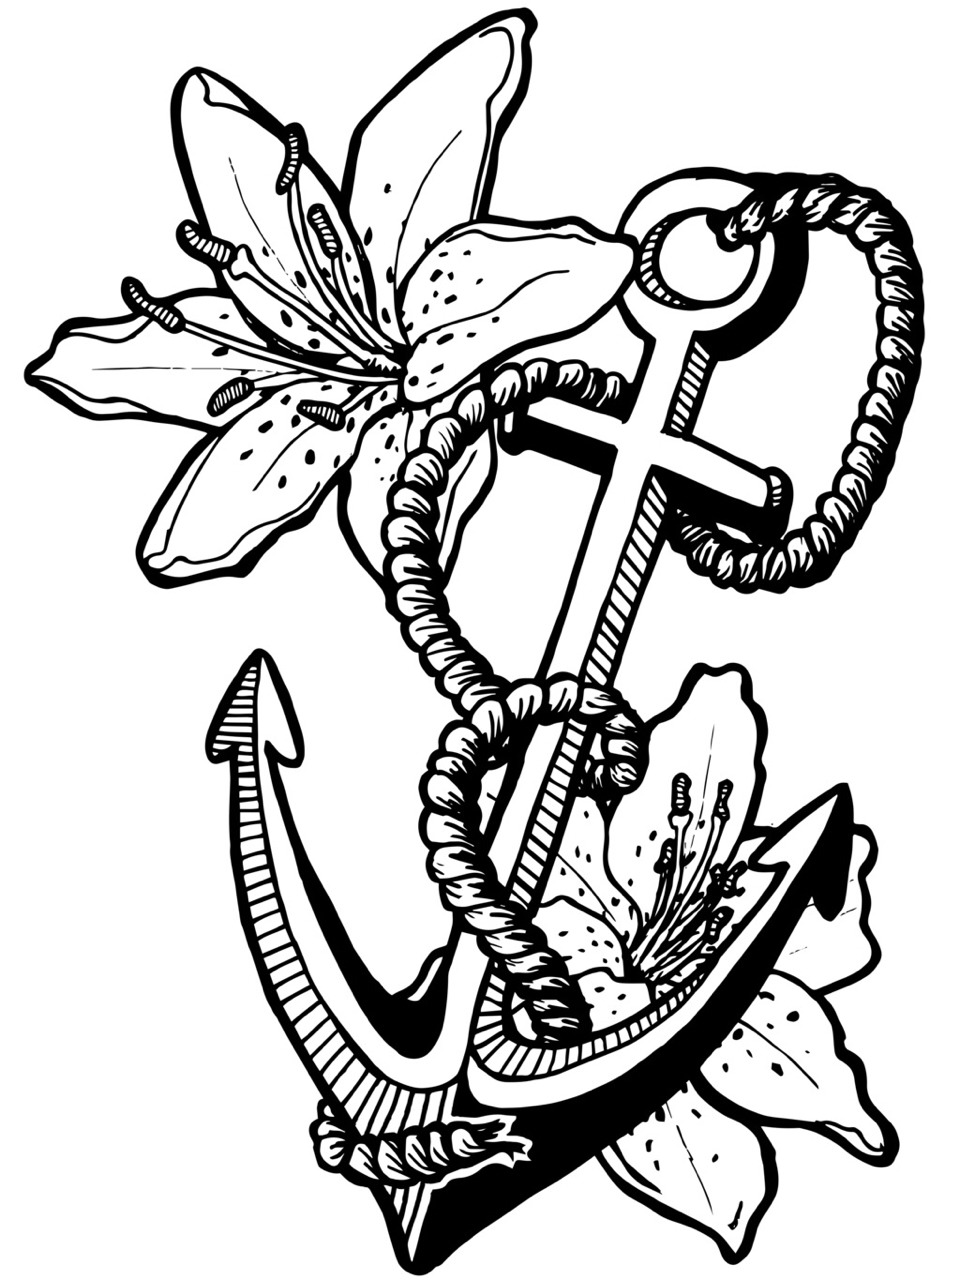 960x1280 Anchor Coloring Page With Rope Free Printable Pages Auto Market Me